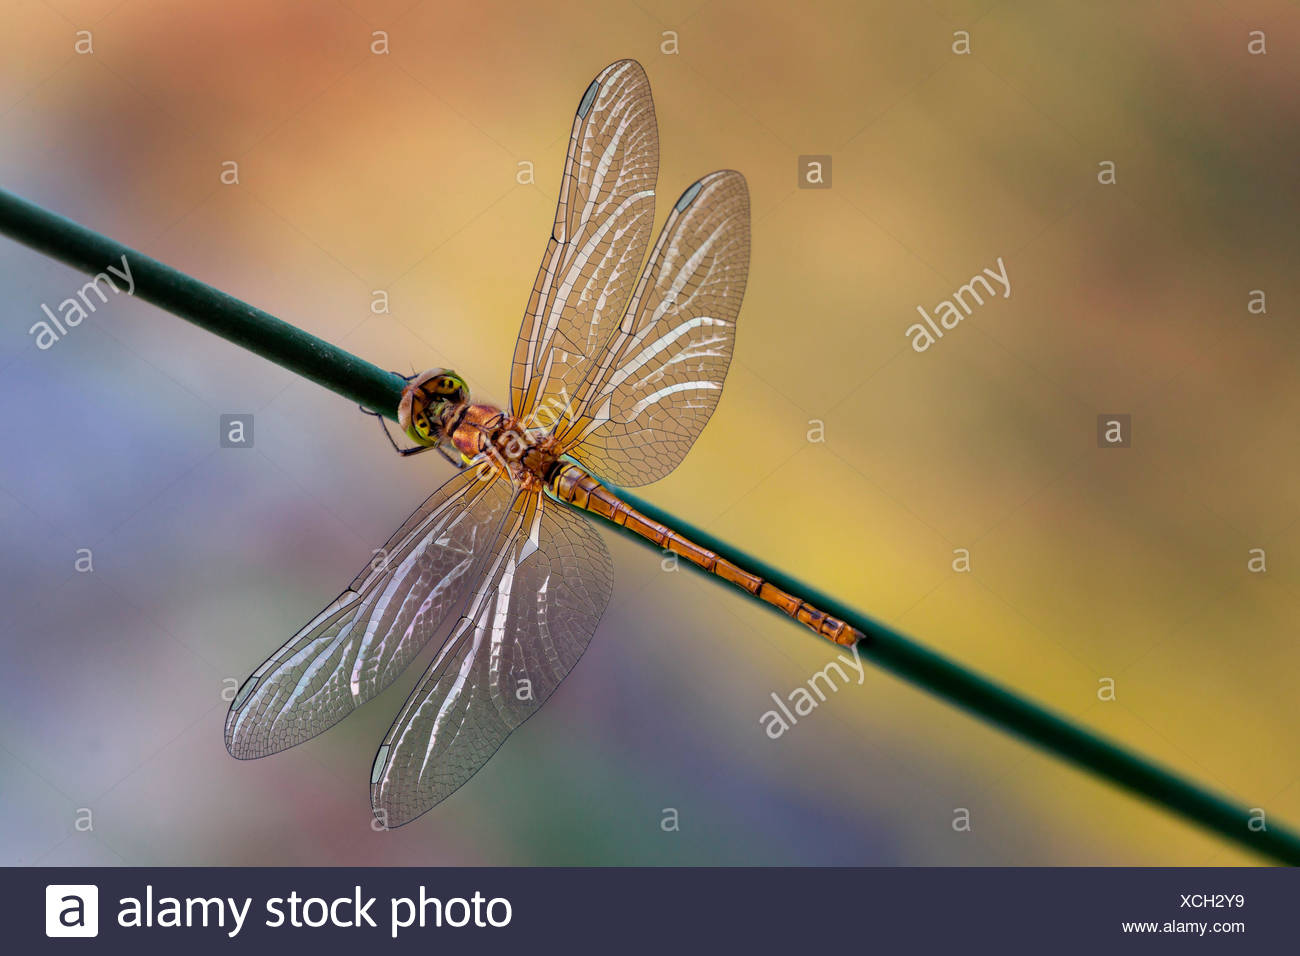 Sympetrum striolatum on the stem, two-tone background - Stock Image